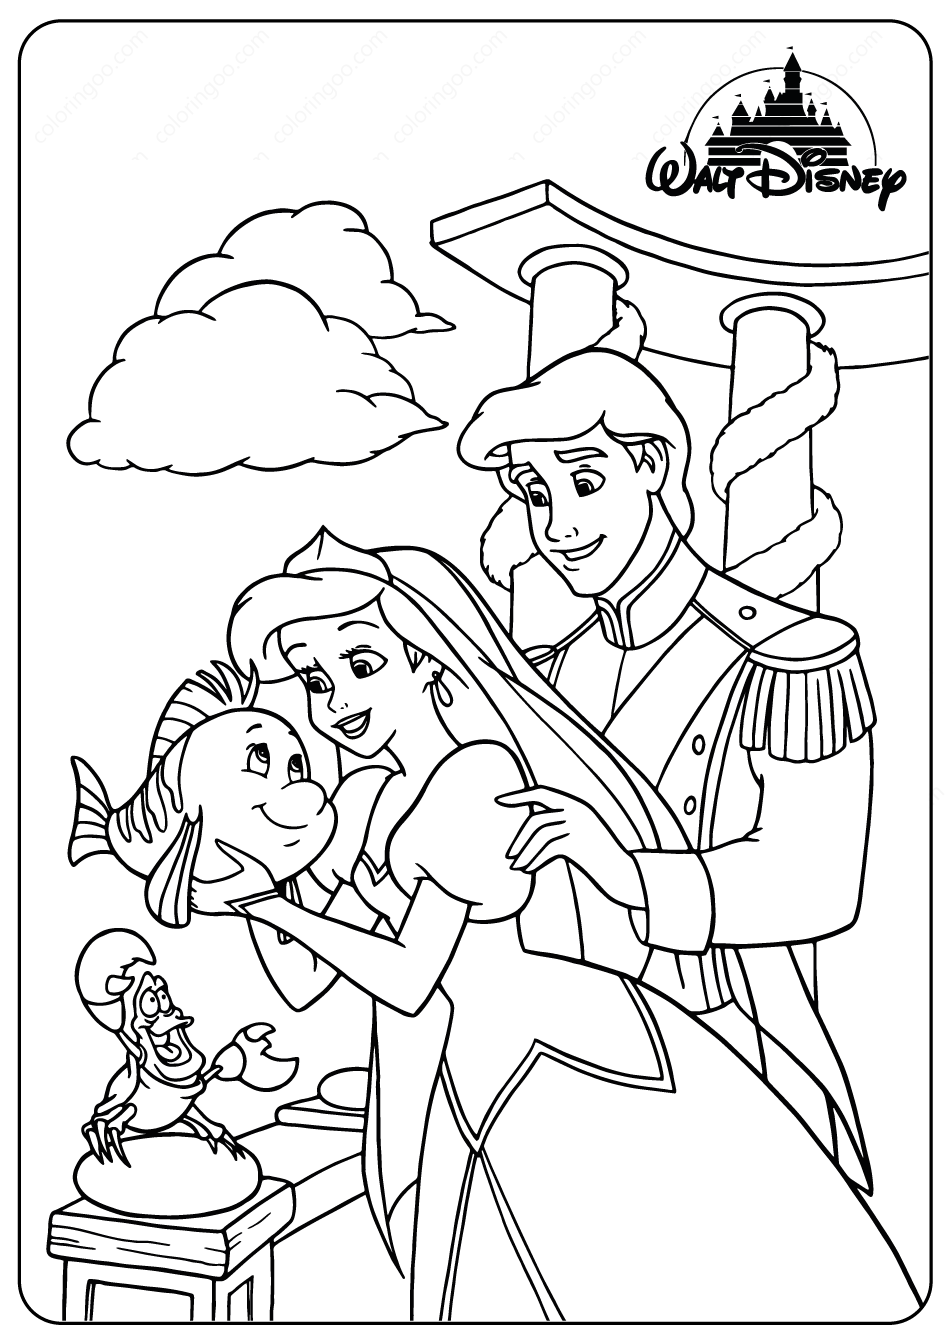 prince coloring pages disney princess and prince coloring pages prince pages coloring